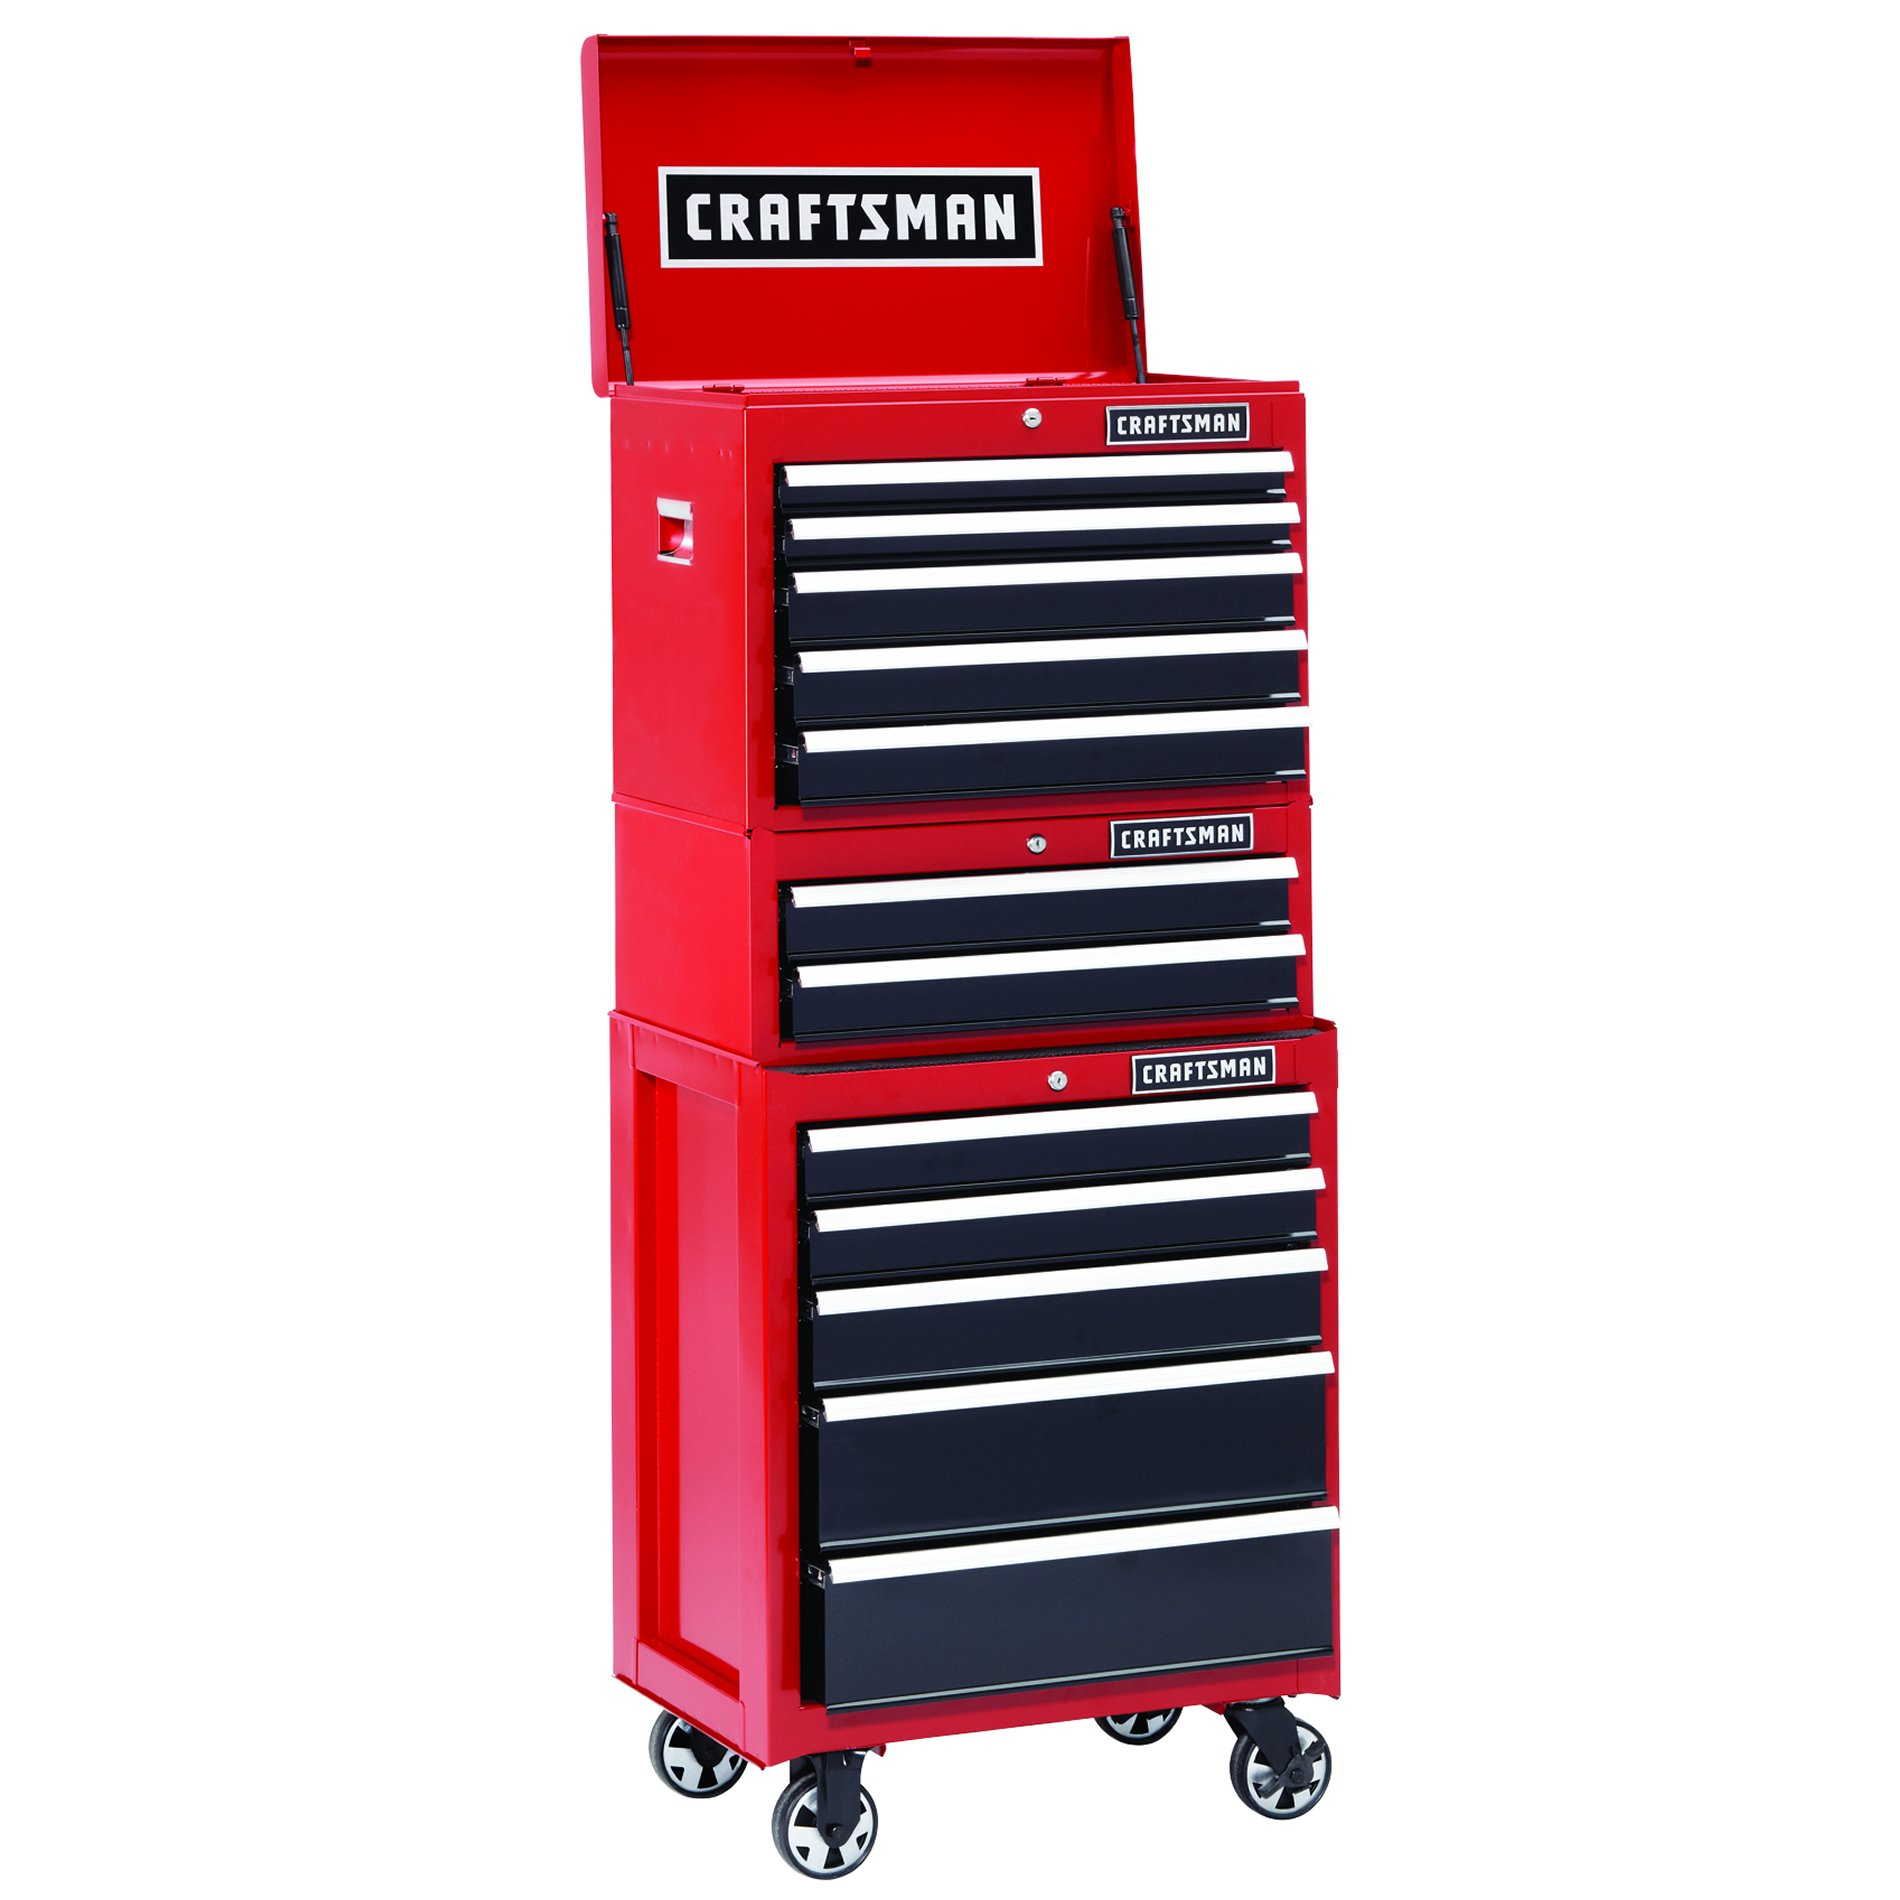 Craftsman 26 in. 5-Drawer Heavy-Duty Ball Bearing Rolling Cabinet - Red/Black